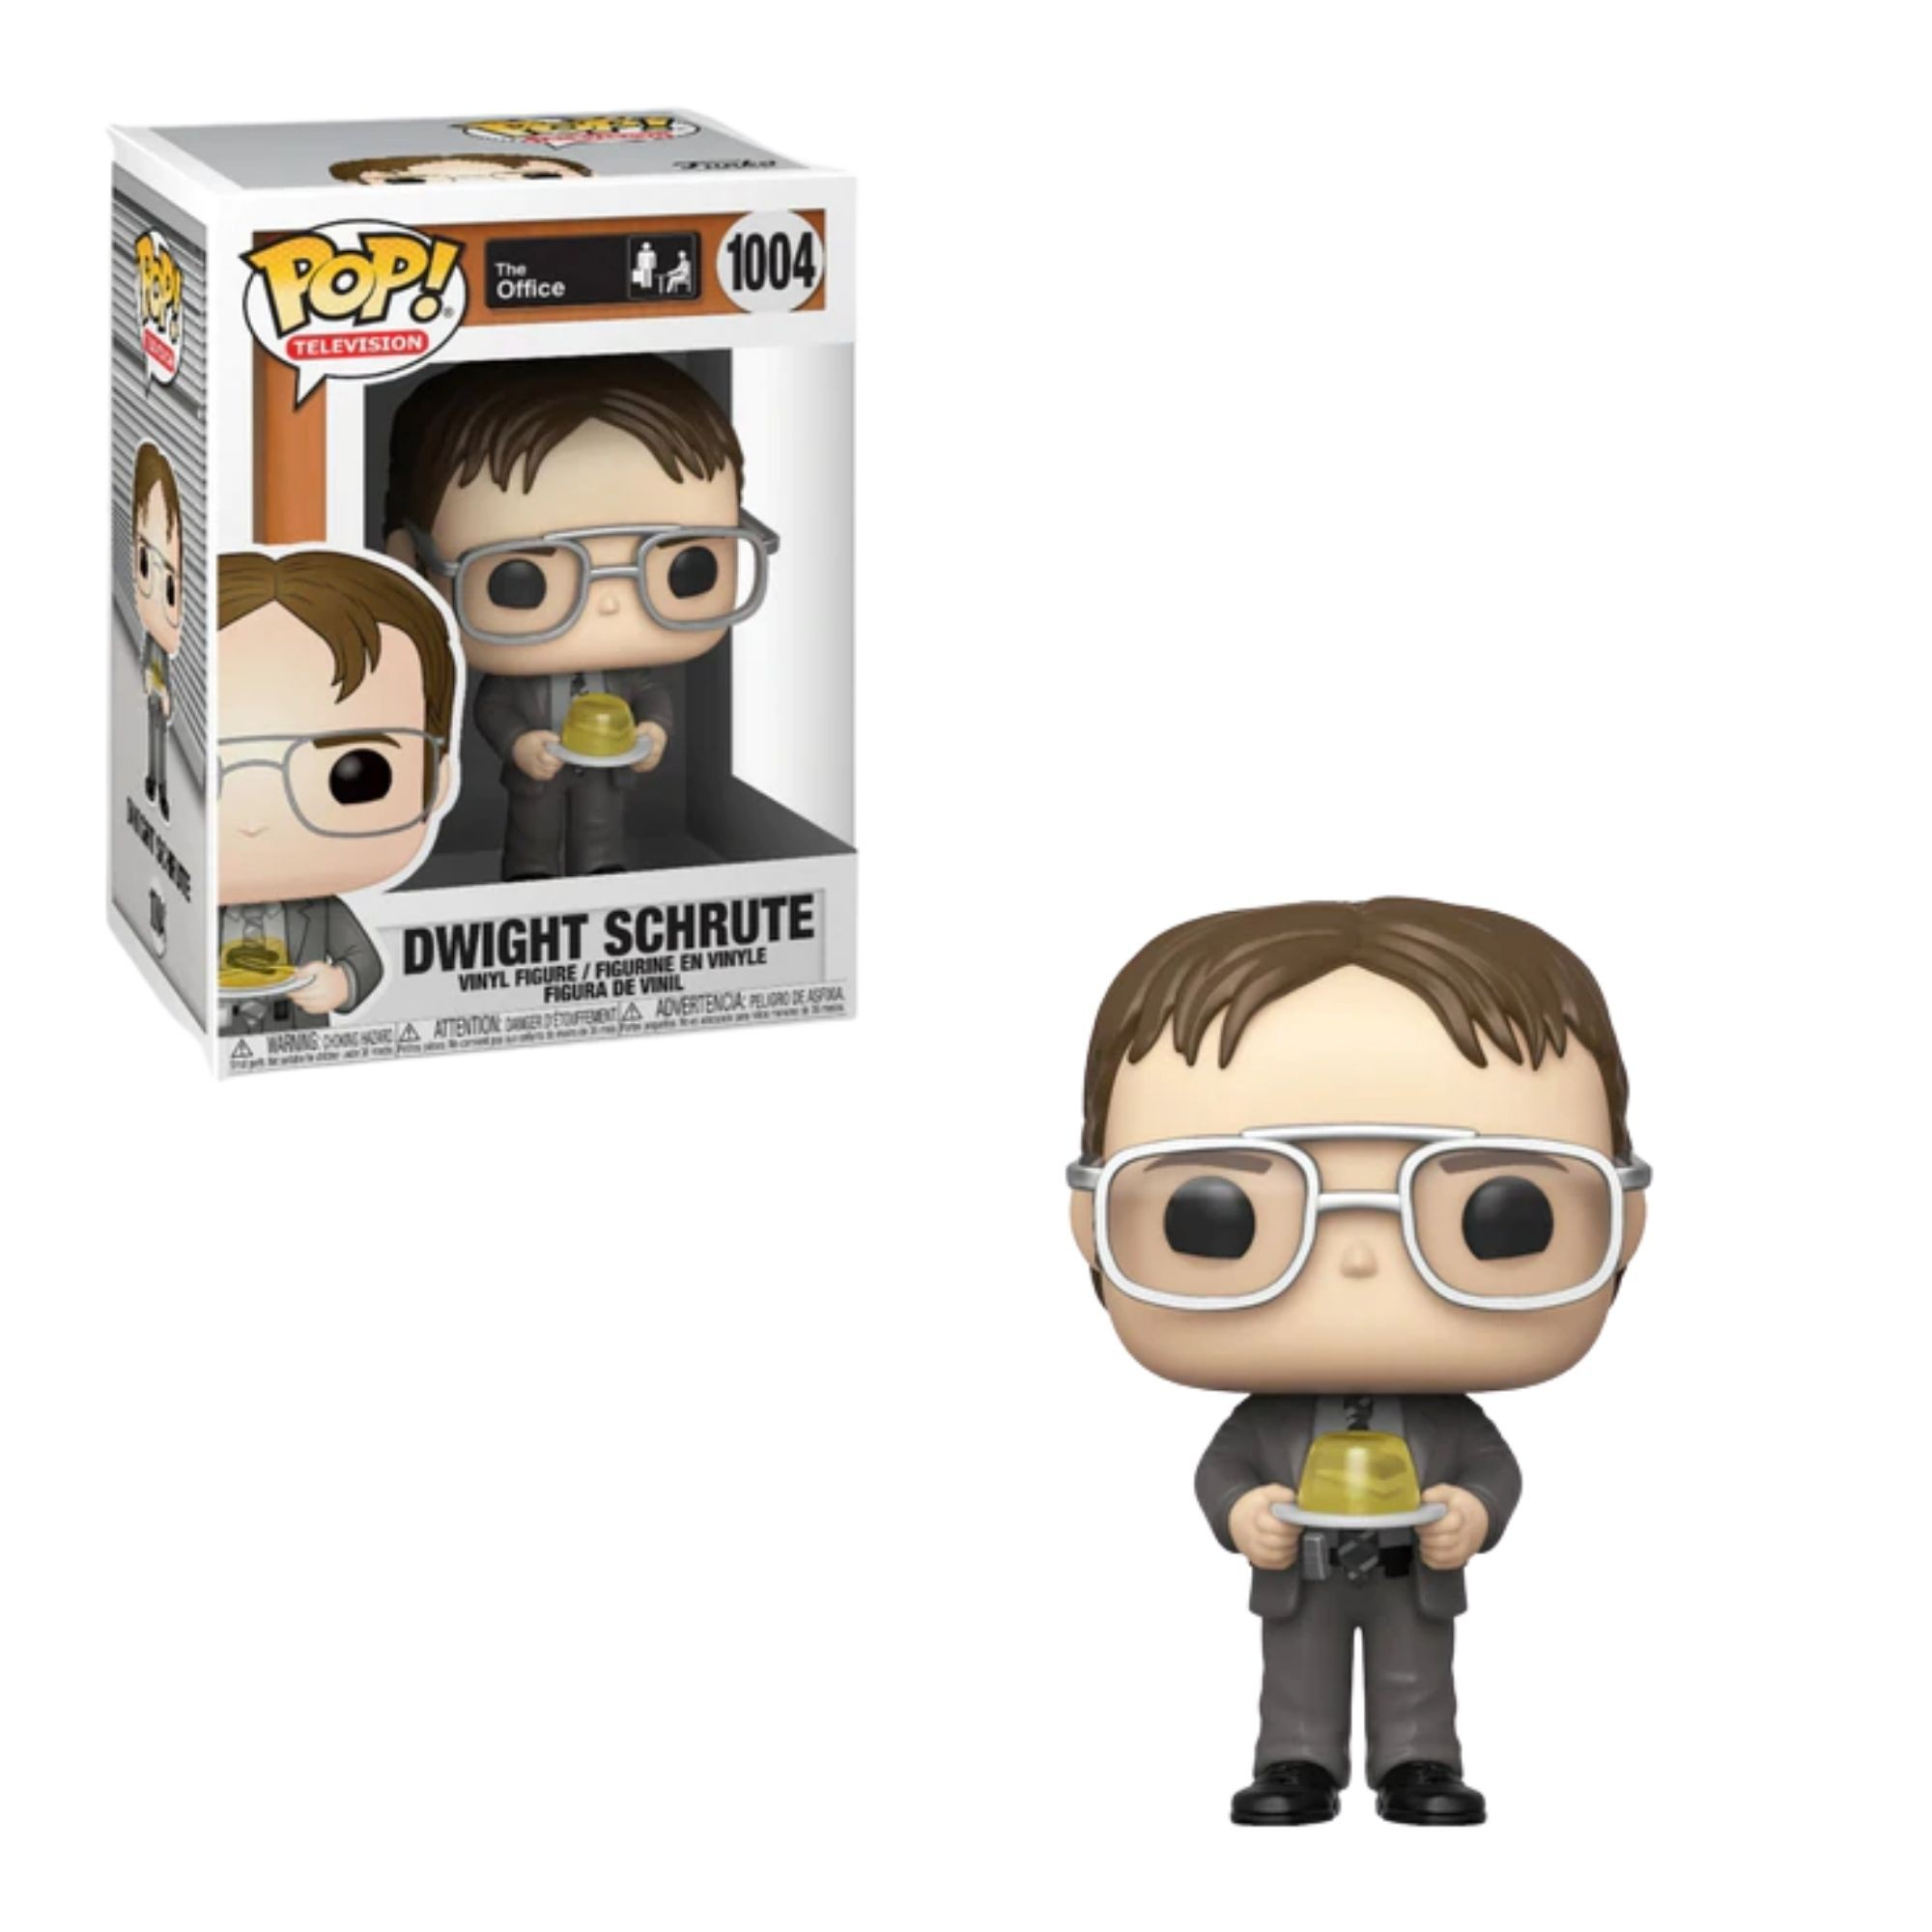 Boneco Funko Pop The Office Dwight Schrute #1004  - Game Land Brinquedos